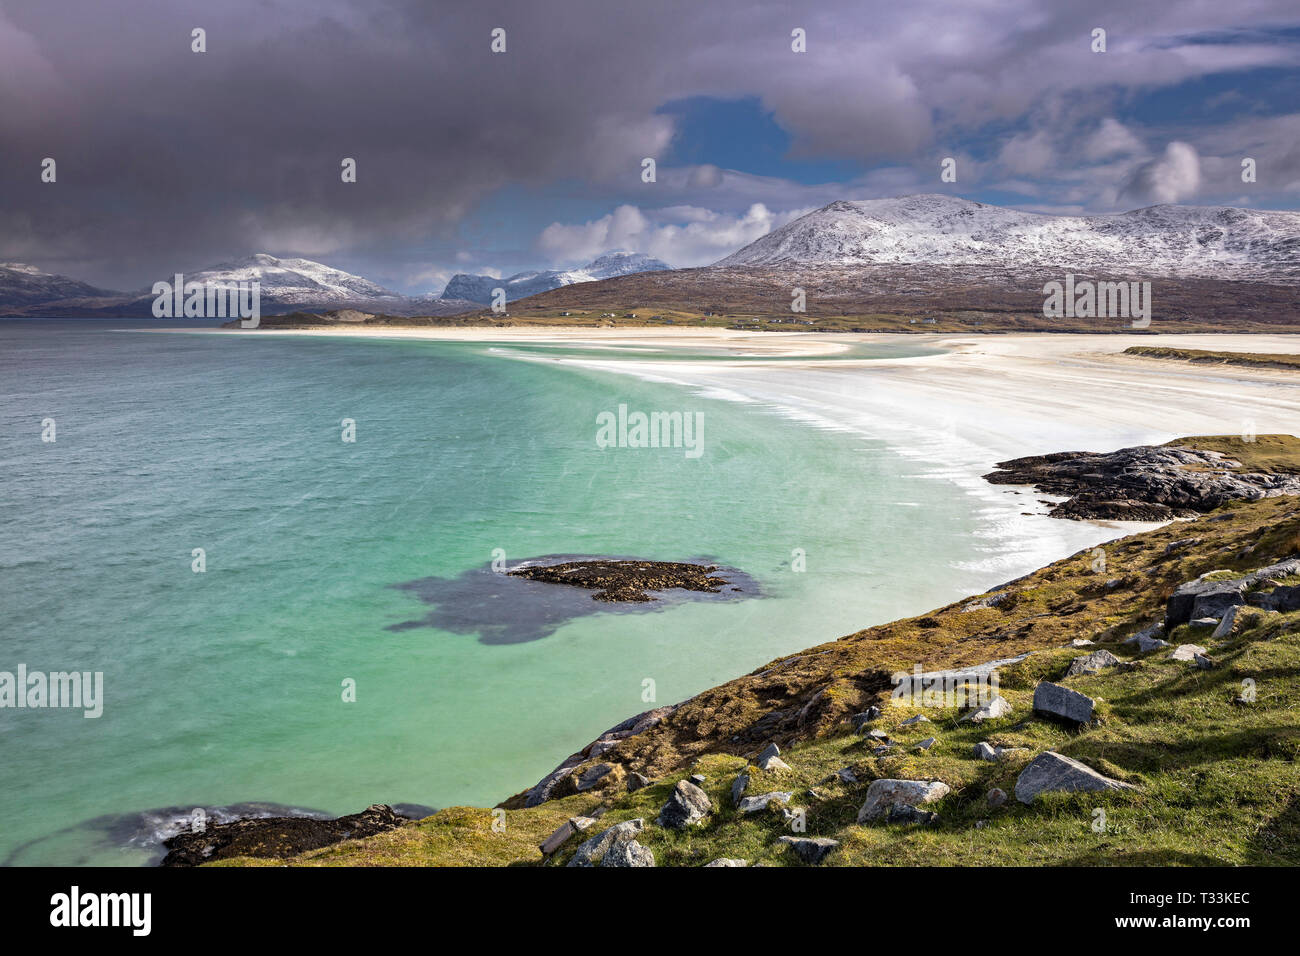 Cold spring day at Sheileboist, Isle of Harris, Western Isles, Scotland - Stock Image